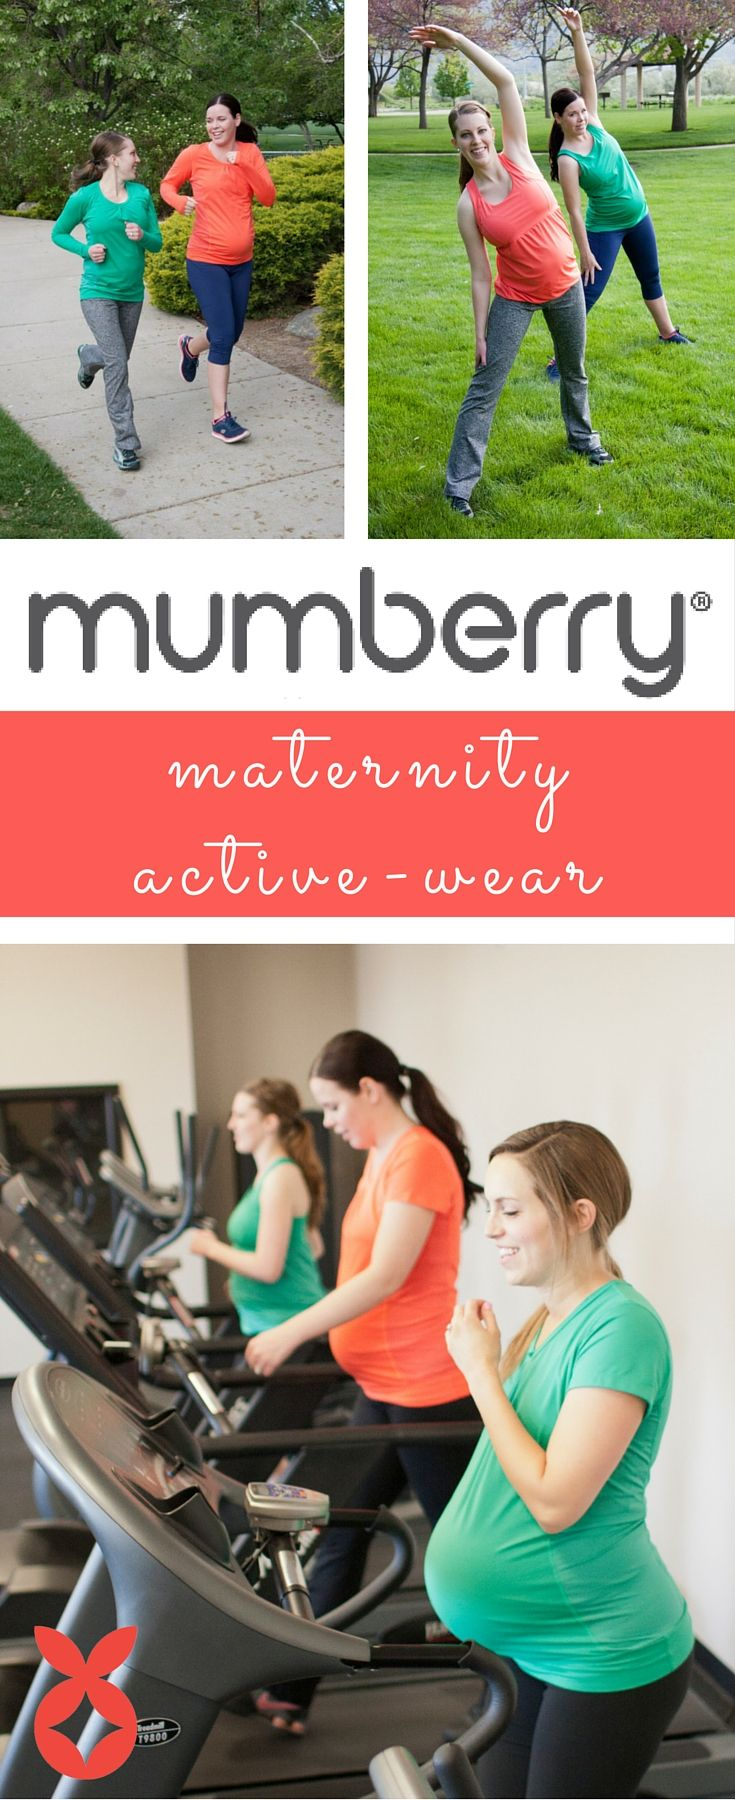 Save yourself some back pain with Mumberry maternity activewear- for mums who MOVE! Go to Mumberry.com to see the entire collection!